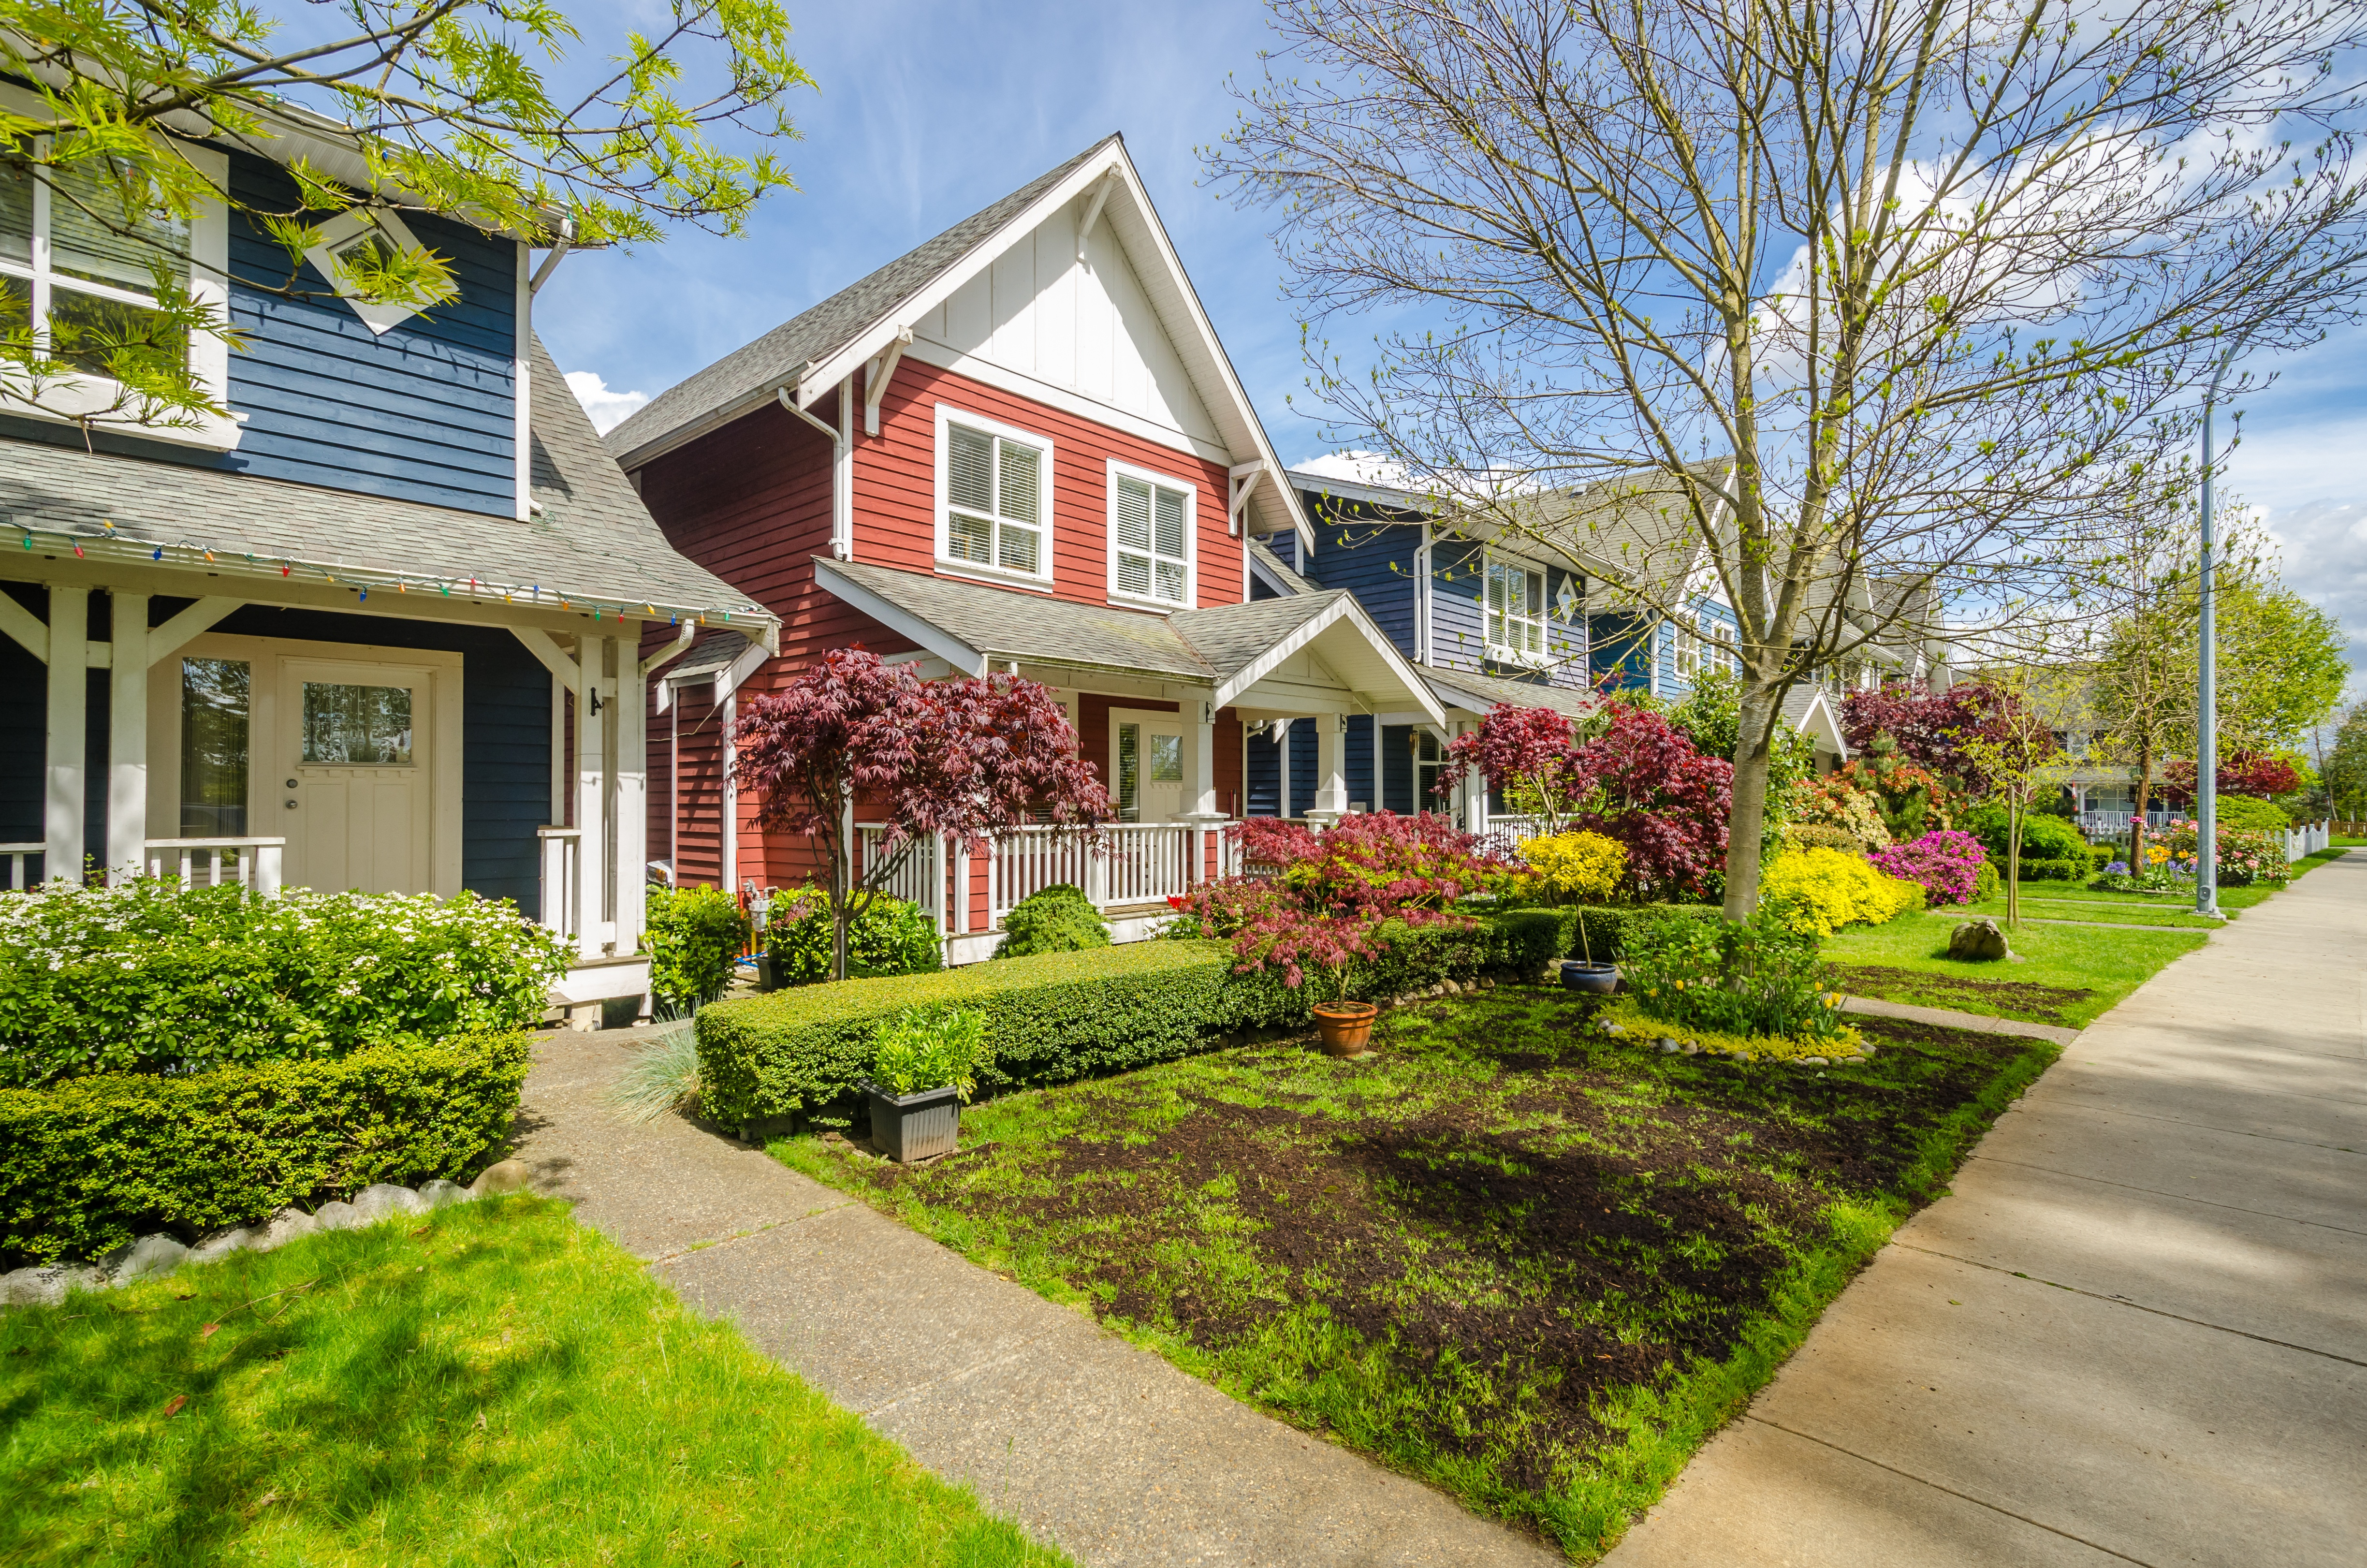 New to REI? 4 Creative Real Estate Investing Tips You Need To Know